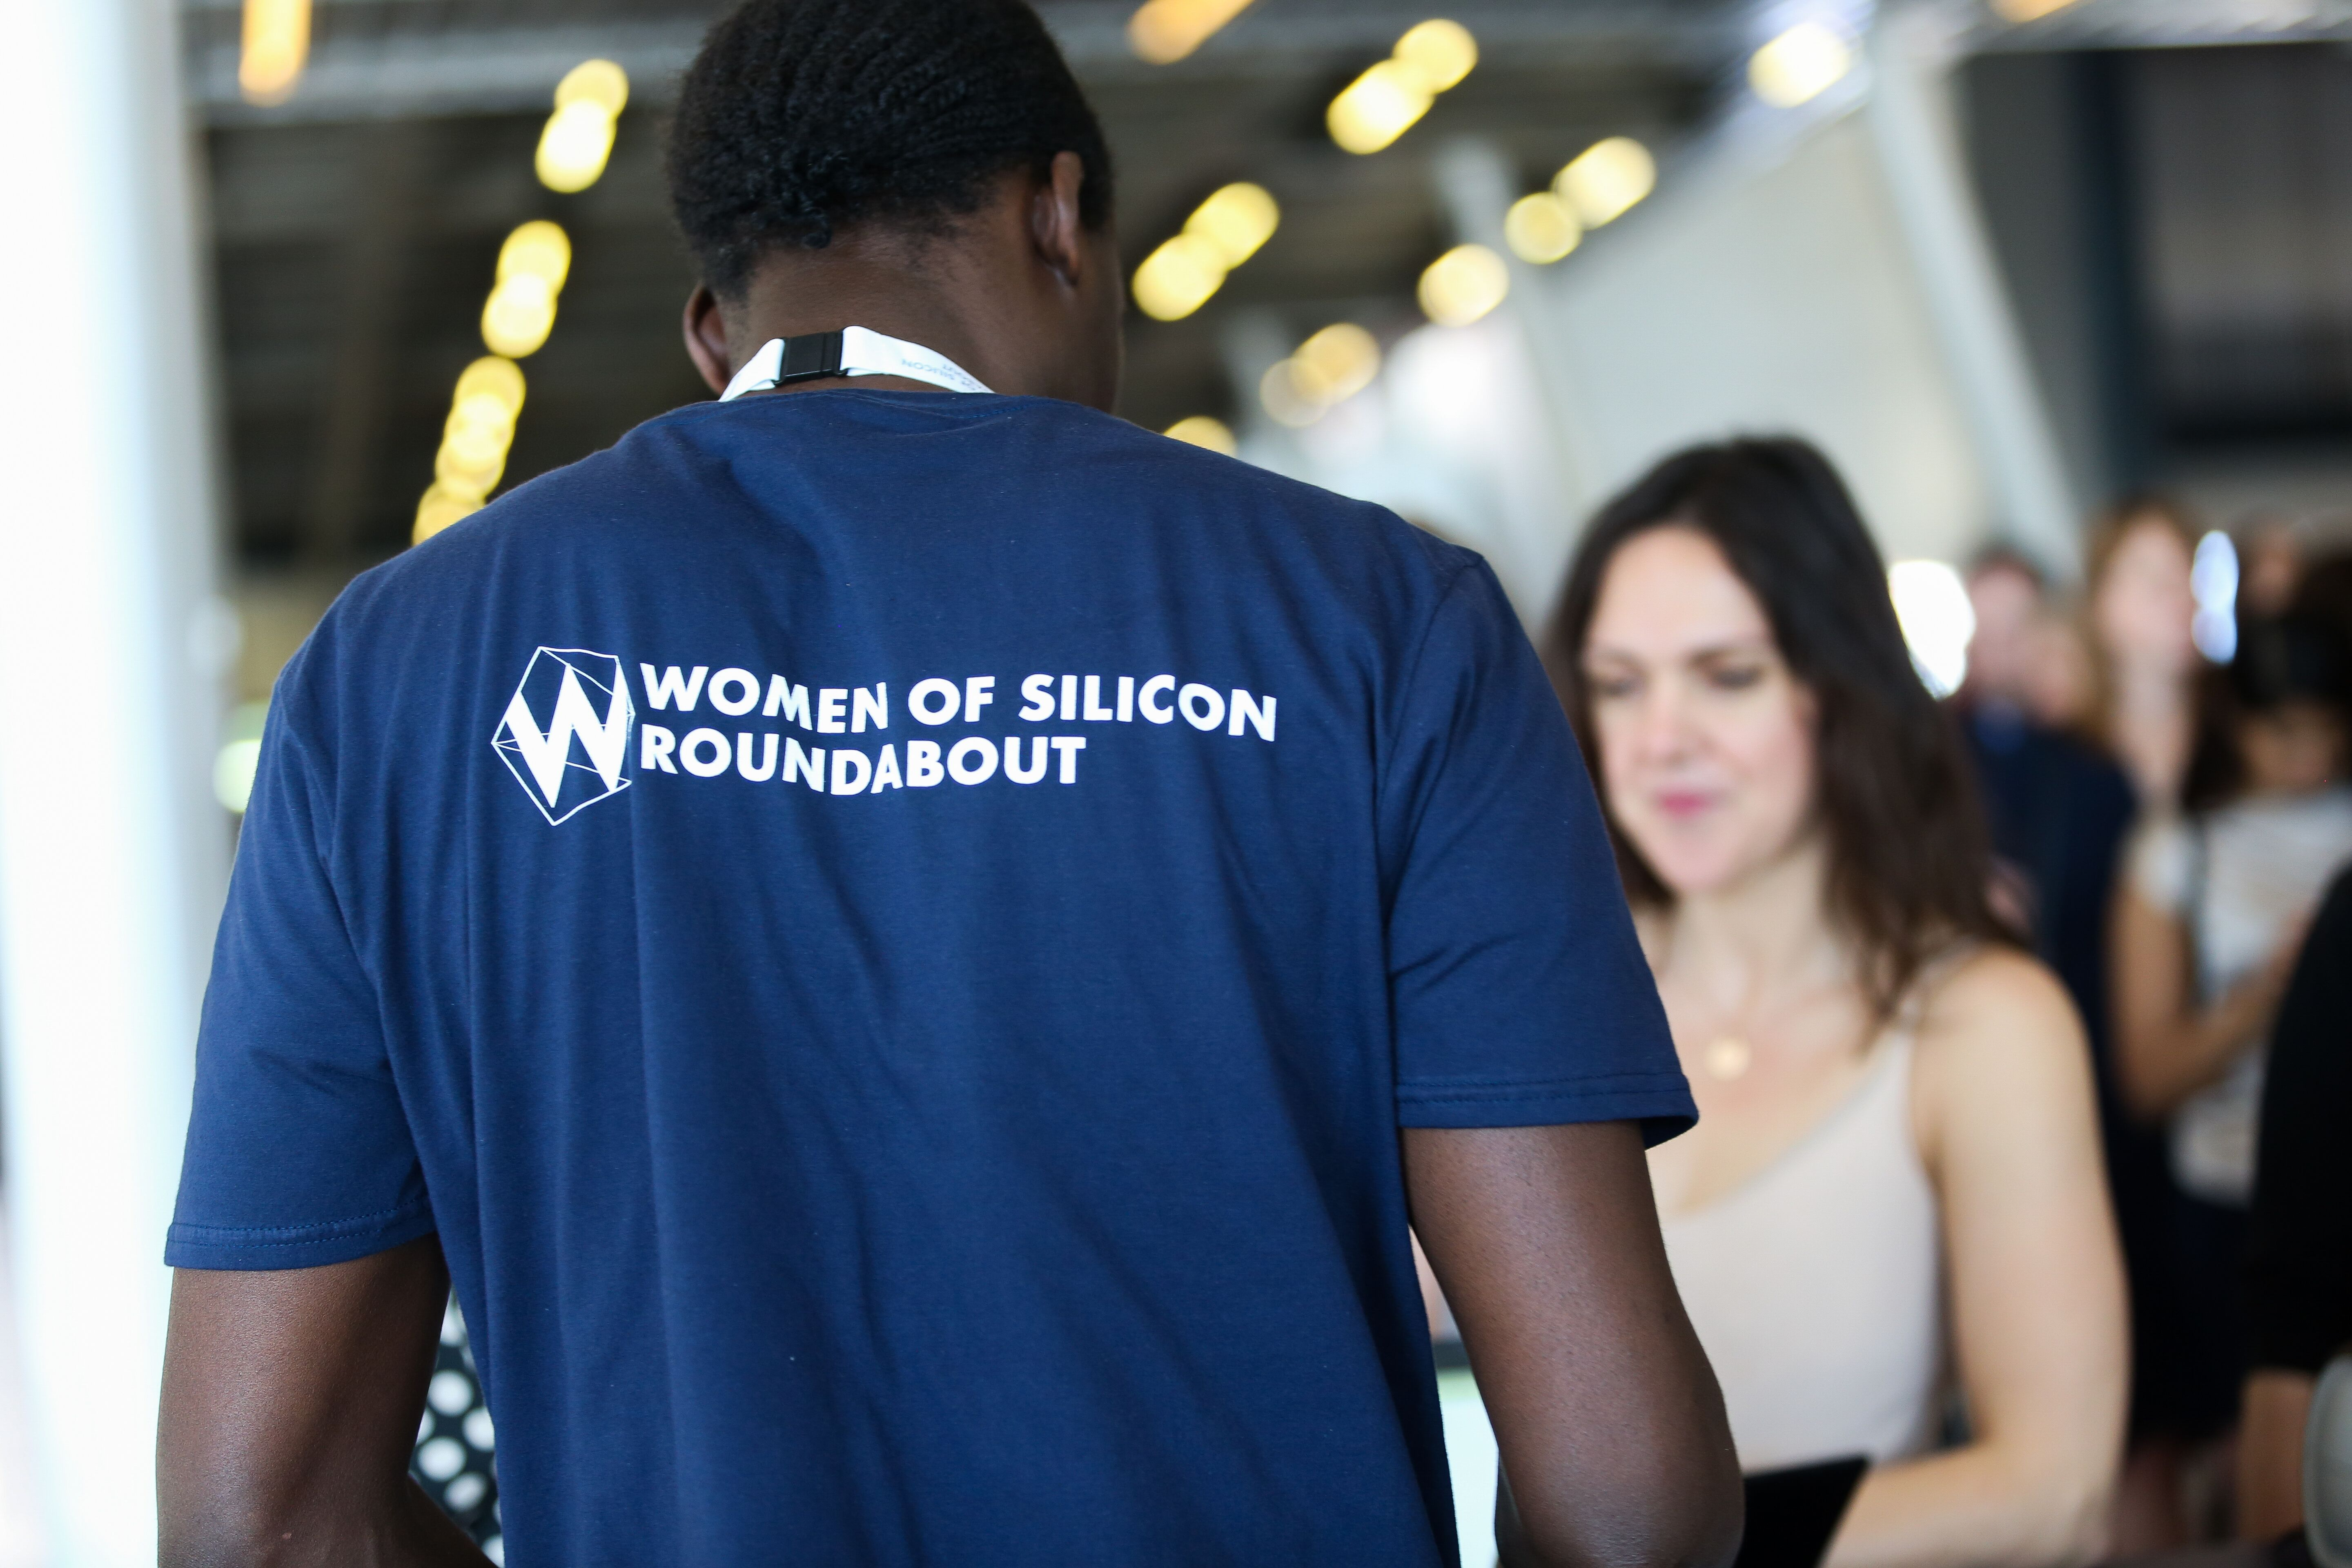 Welcome to Women of Silicon Roundabout